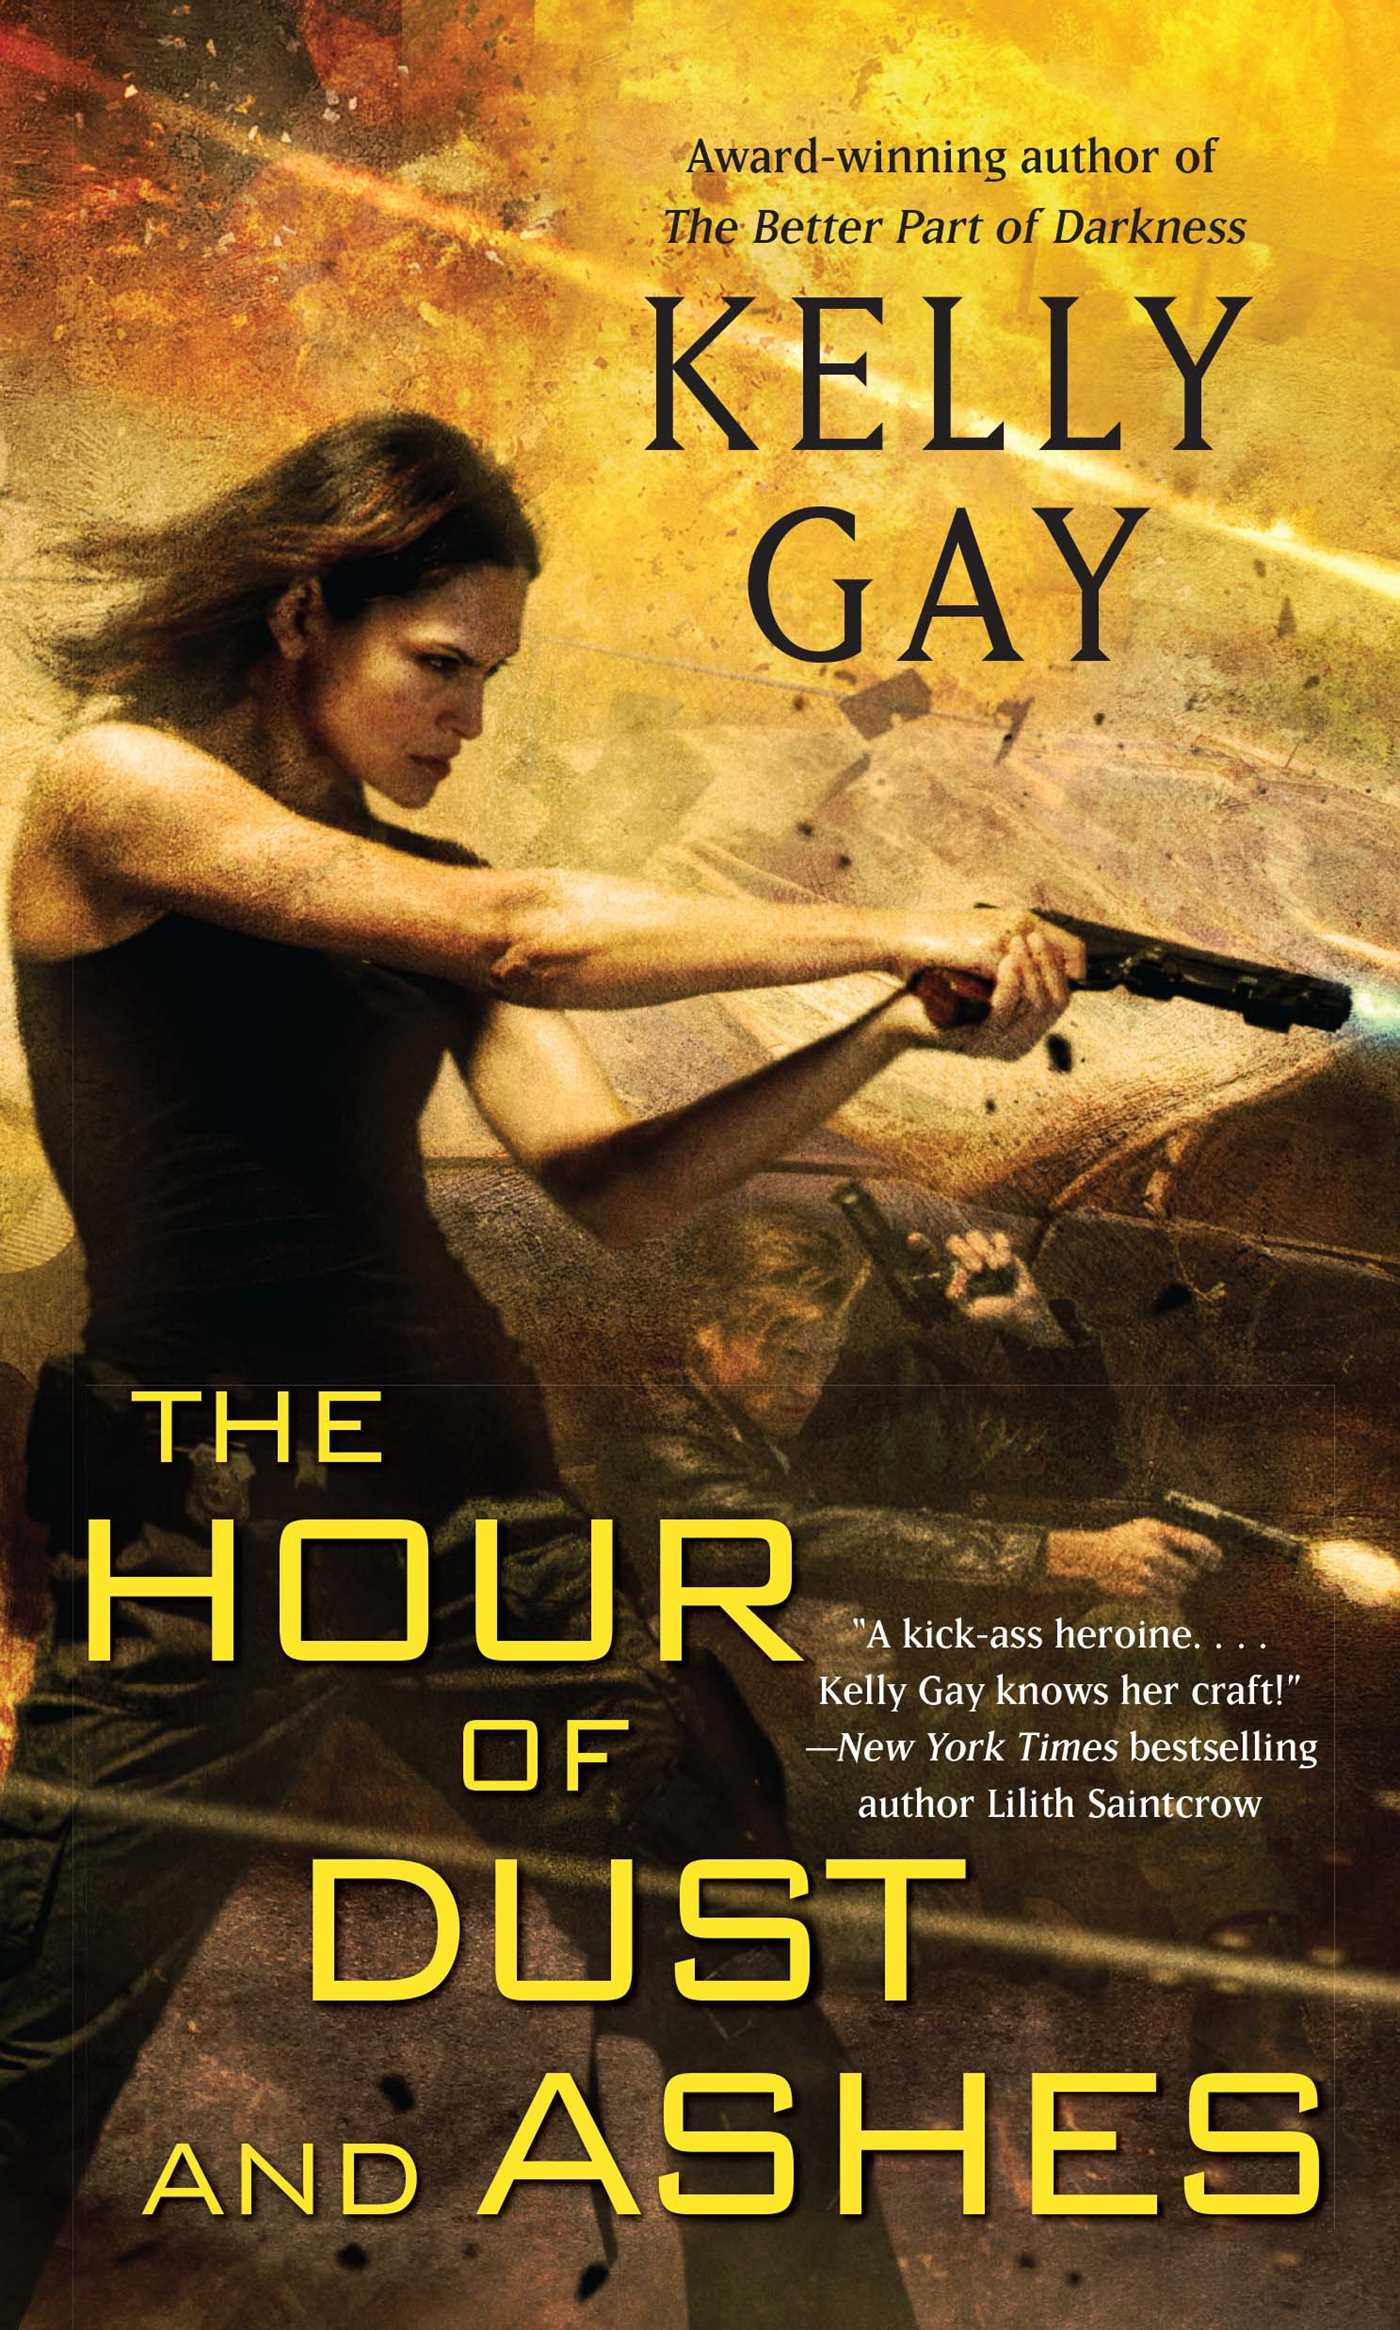 The hour of dust and ashes 9781451625493 hr